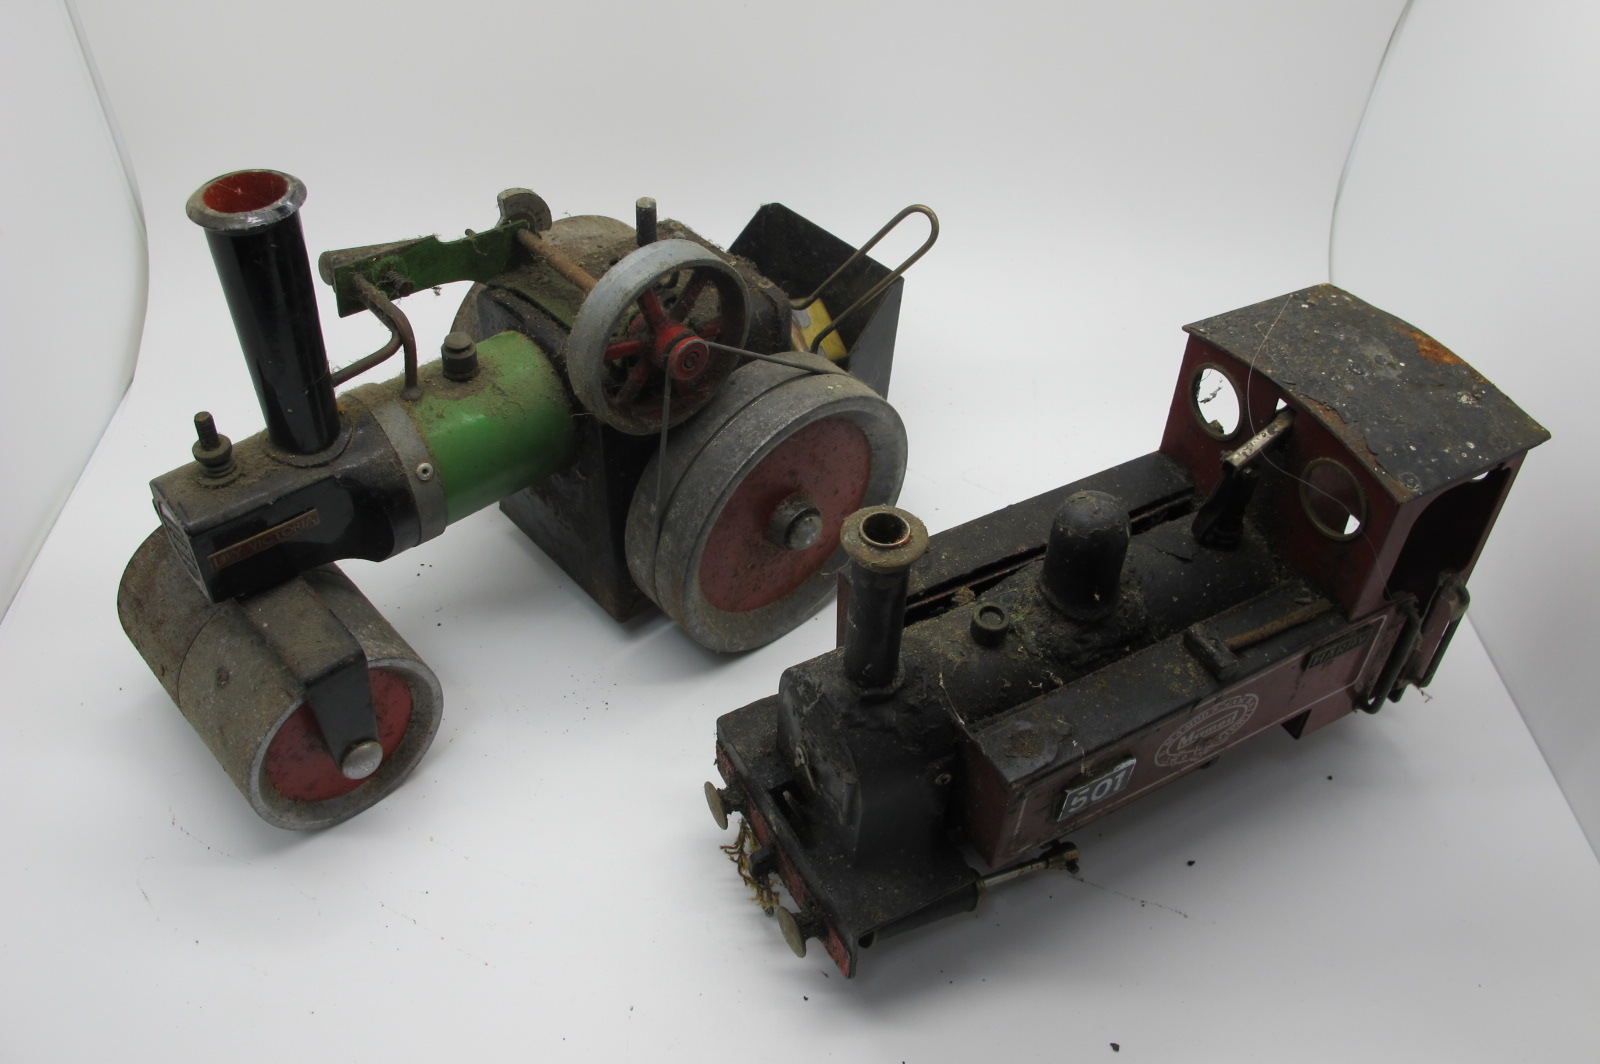 A Mamod SL3 0-4-0 Live Steam Locomotive and a Mamod SR1 Steam Roller, both playworn, modified